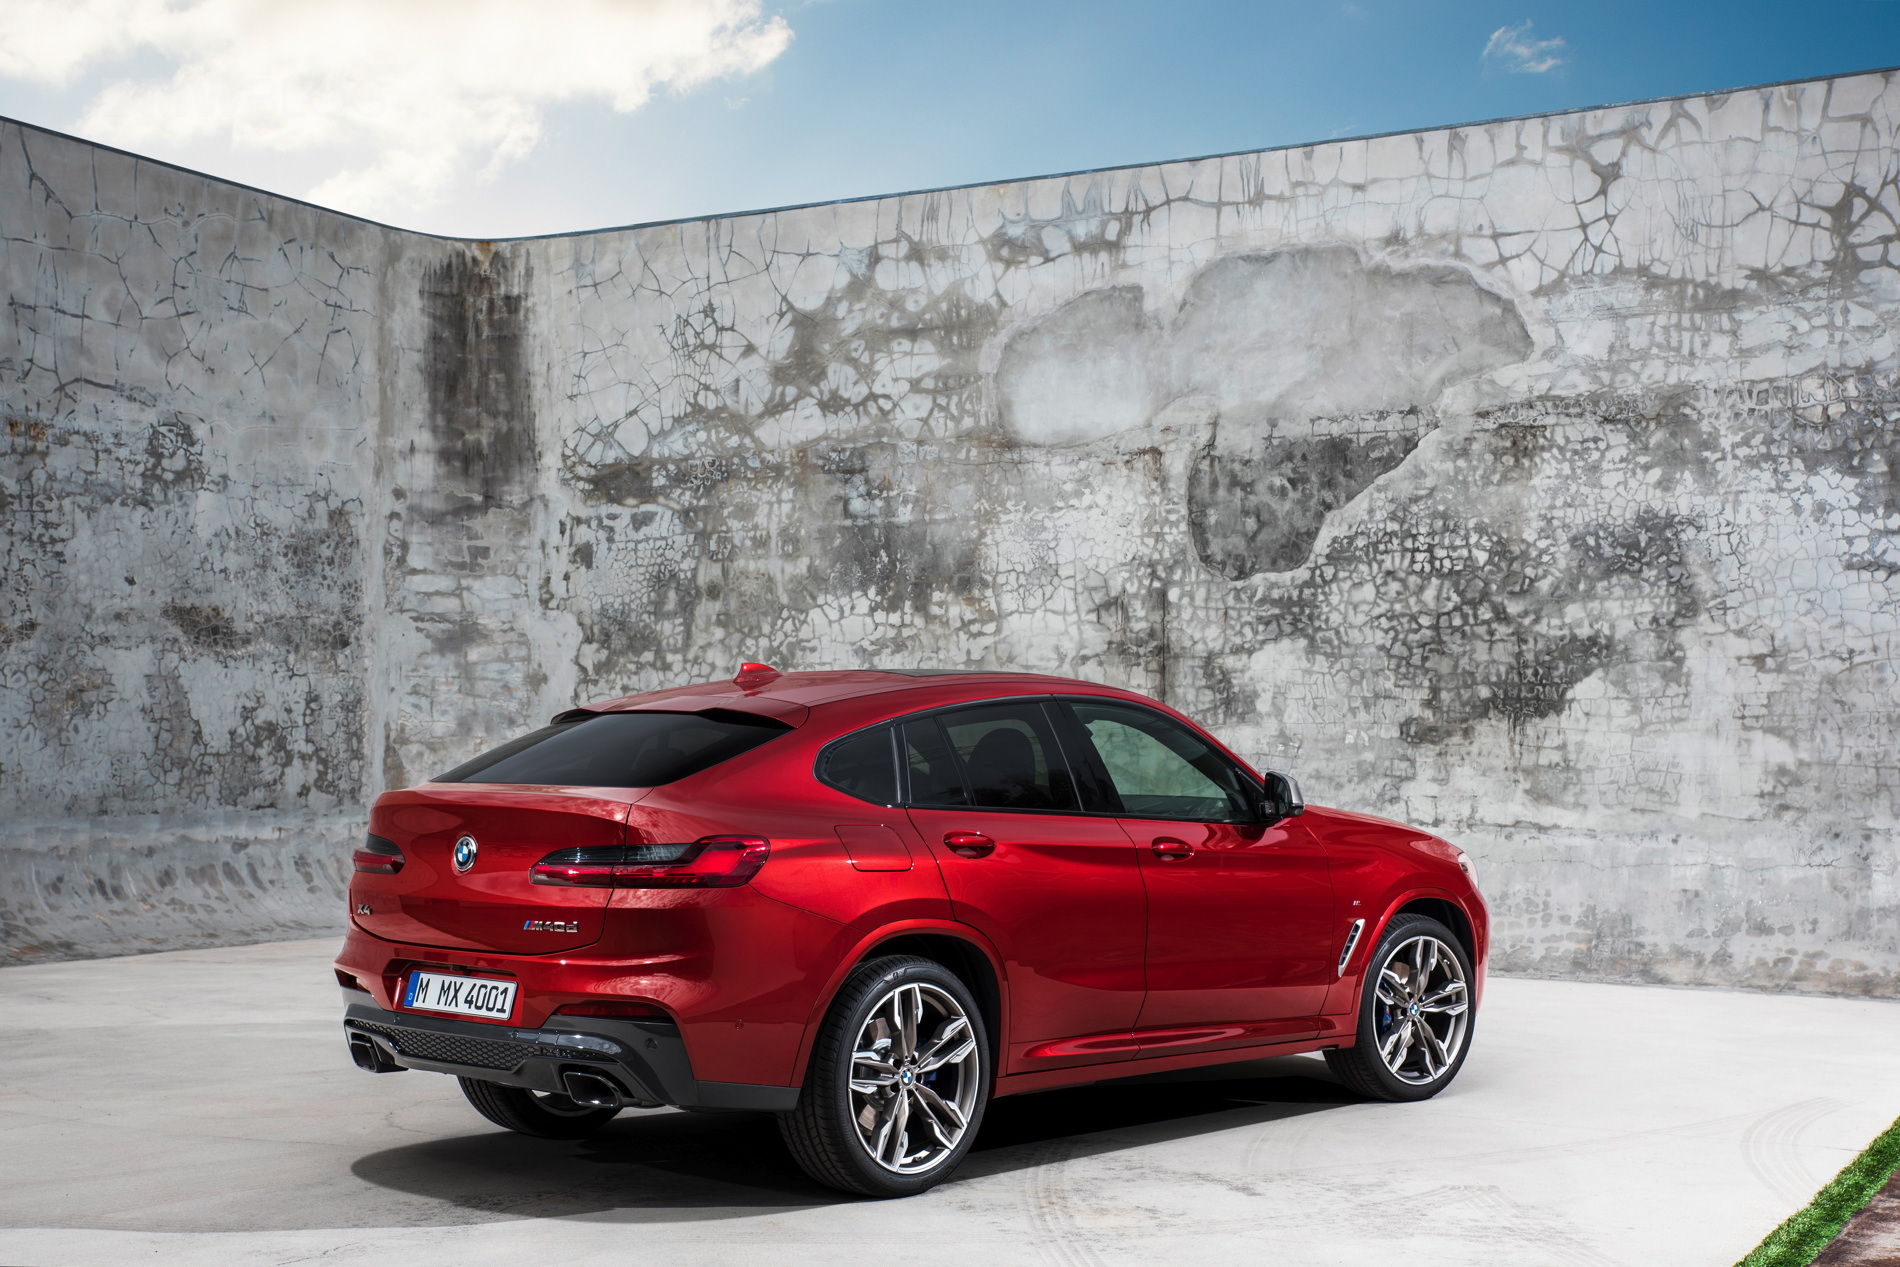 New-2018-BMW-X4-M40d-exterior-design-33.jpg